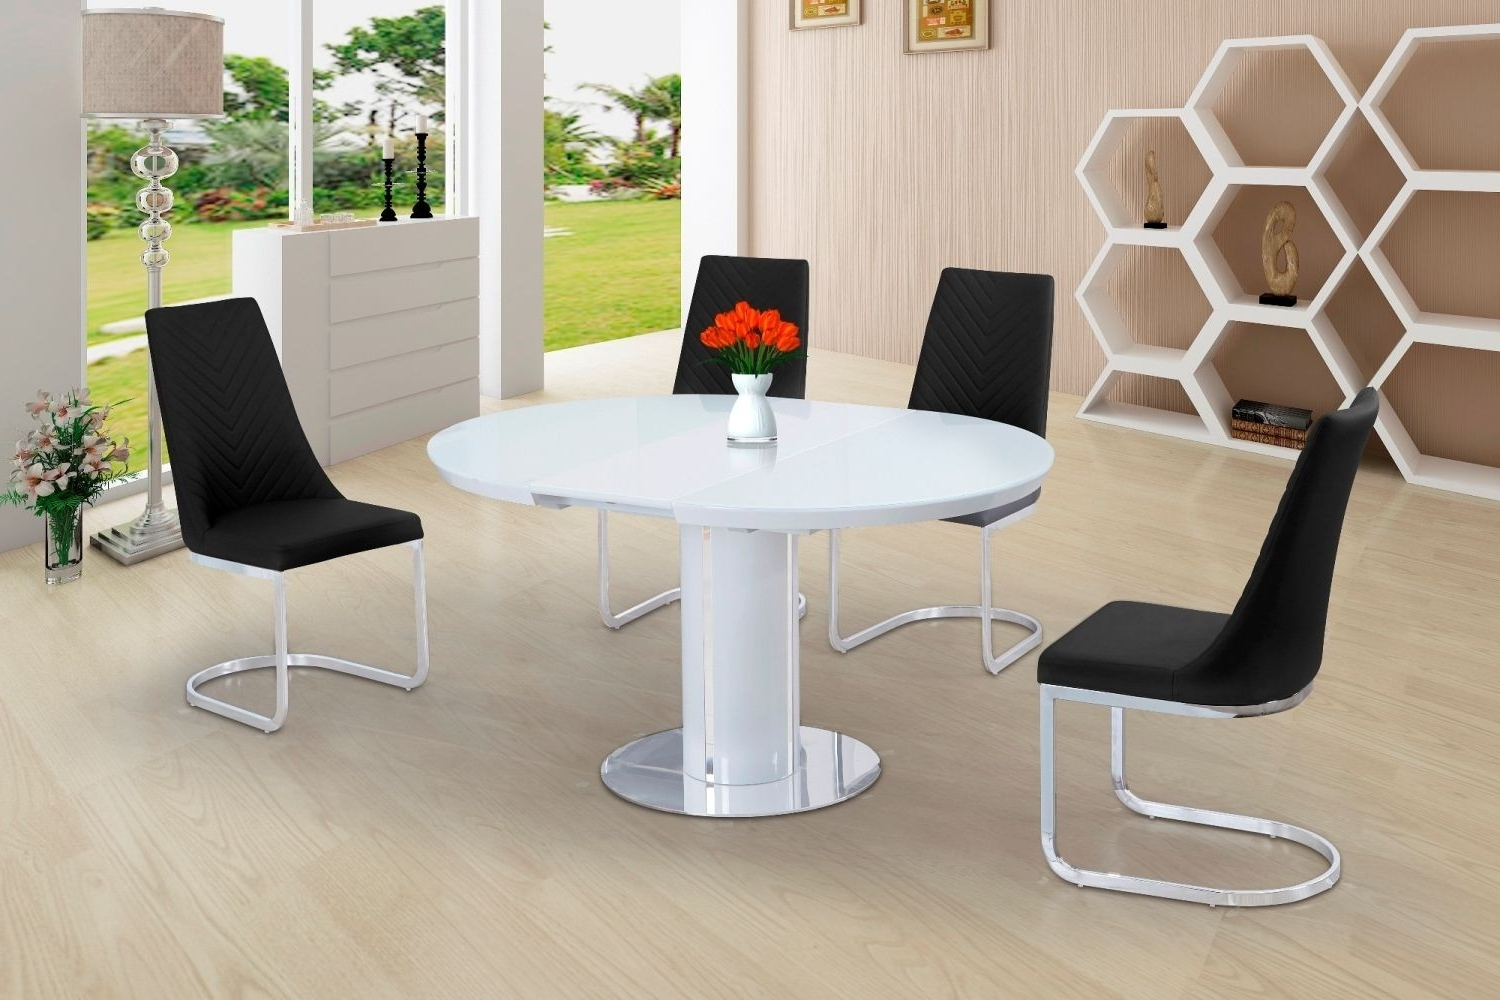 Well Liked Round White Extendable Dining Tables Inside Buy Space Saving White Gloss Extending Round Dining Table (View 5 of 25)